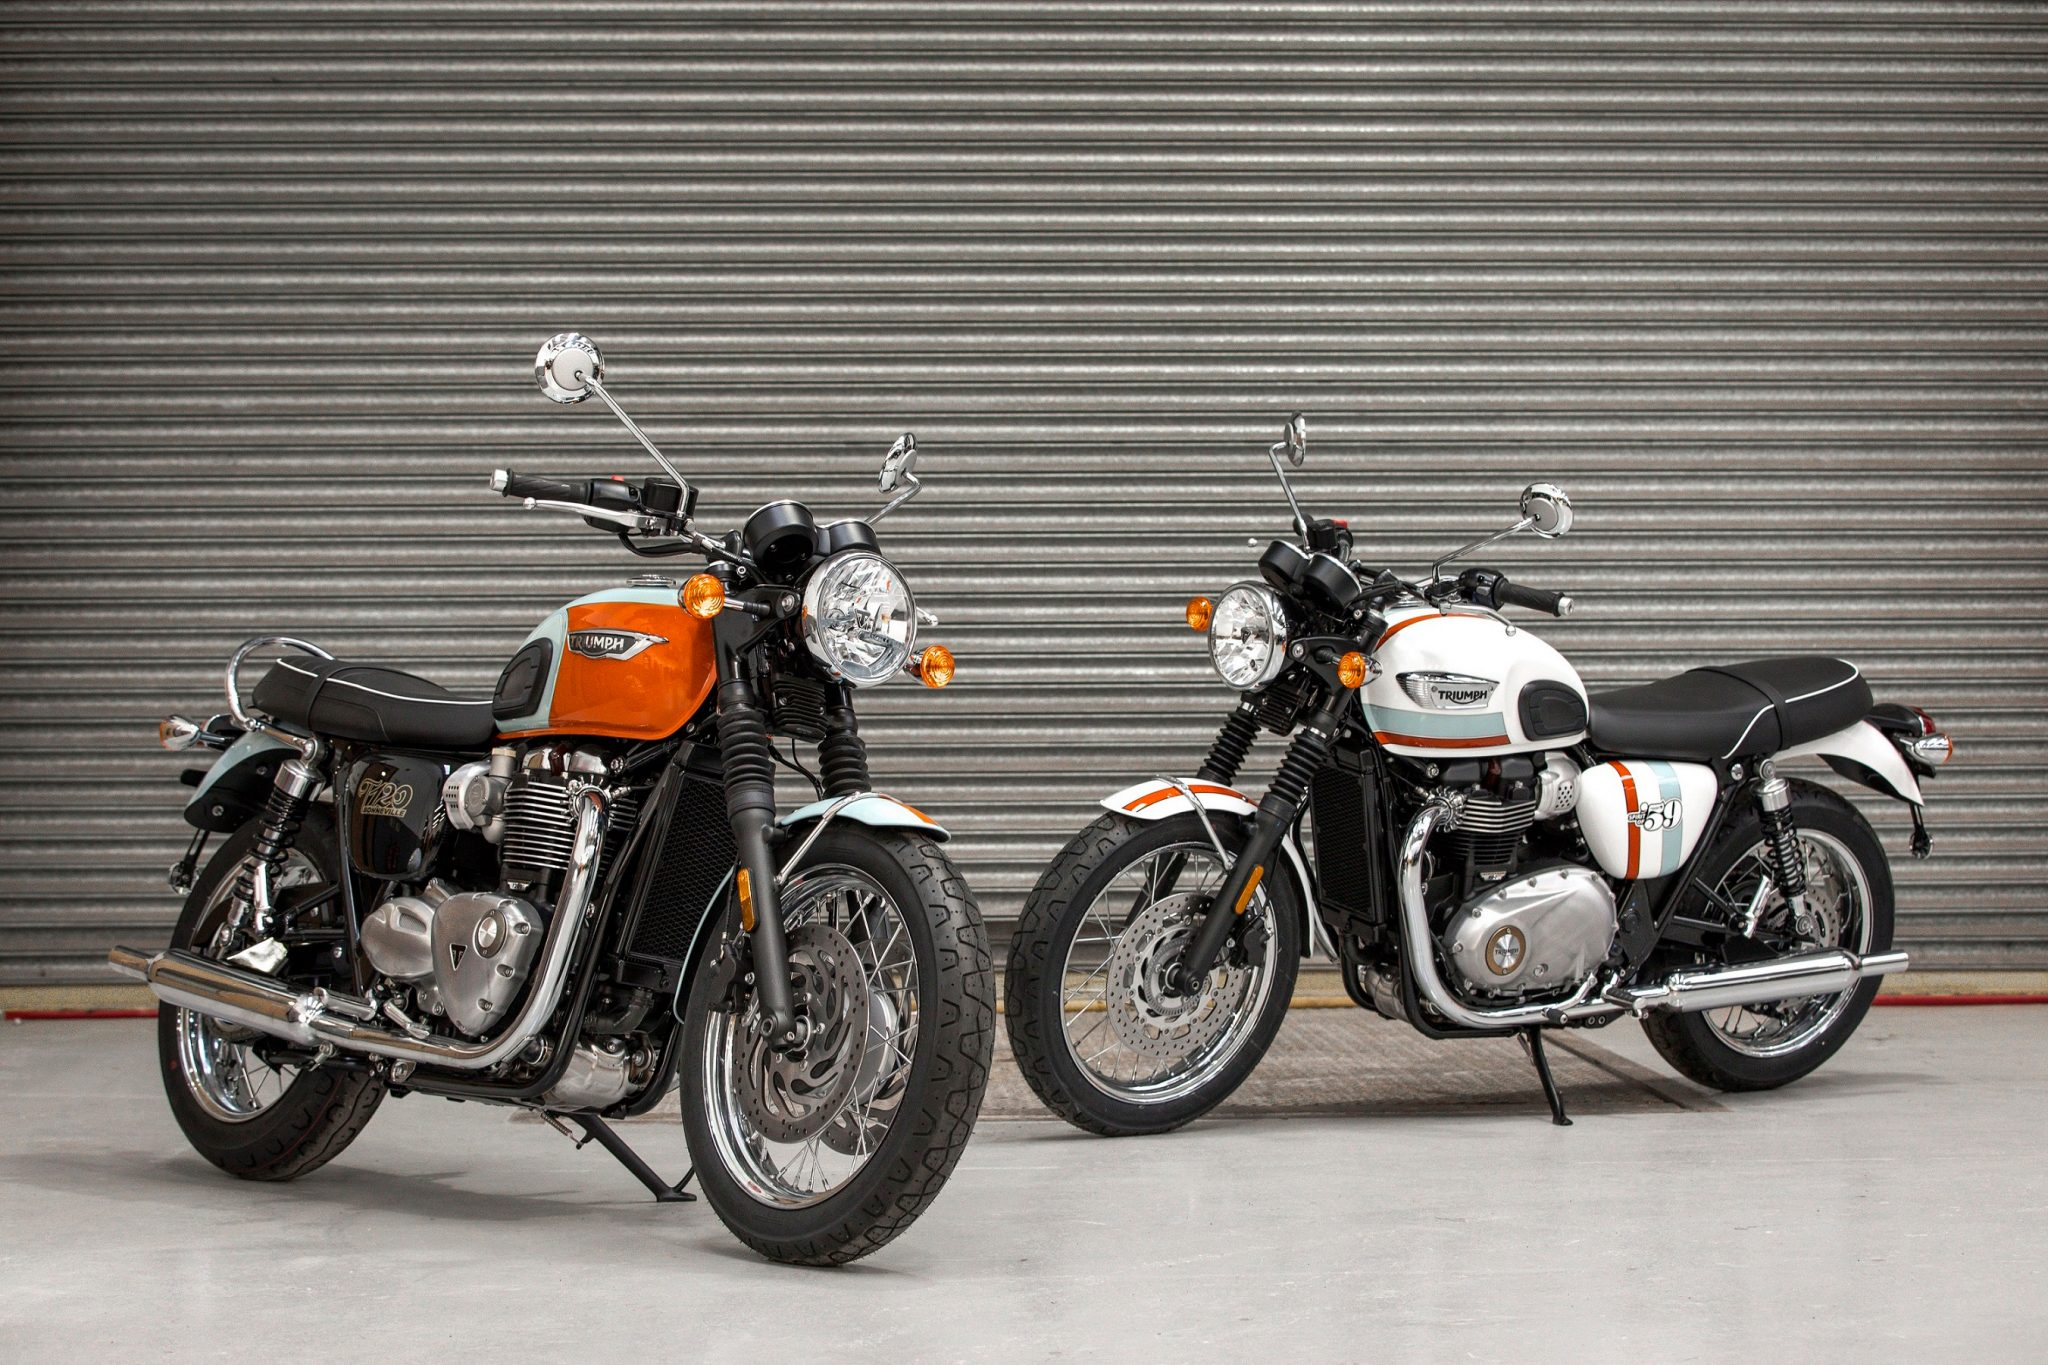 Triumph shows Bonneville's Spirit of 59 limited editions